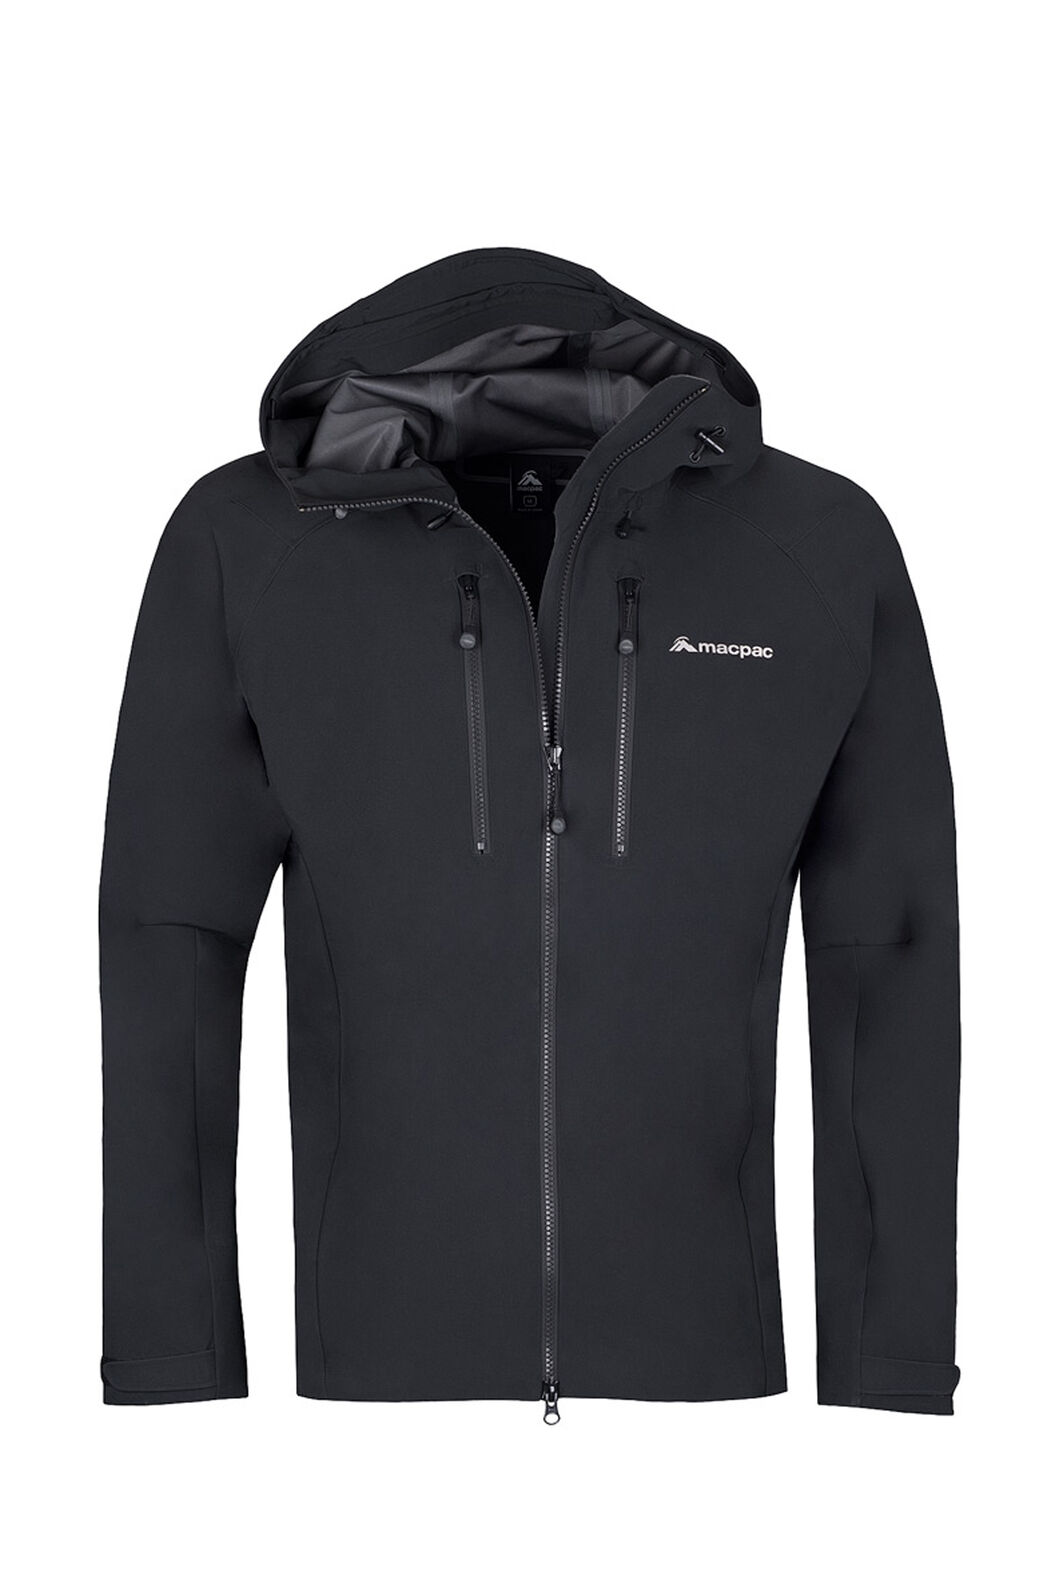 Macpac Fitzroy Alpine Series Softshell Jacket — Men's, Black, hi-res